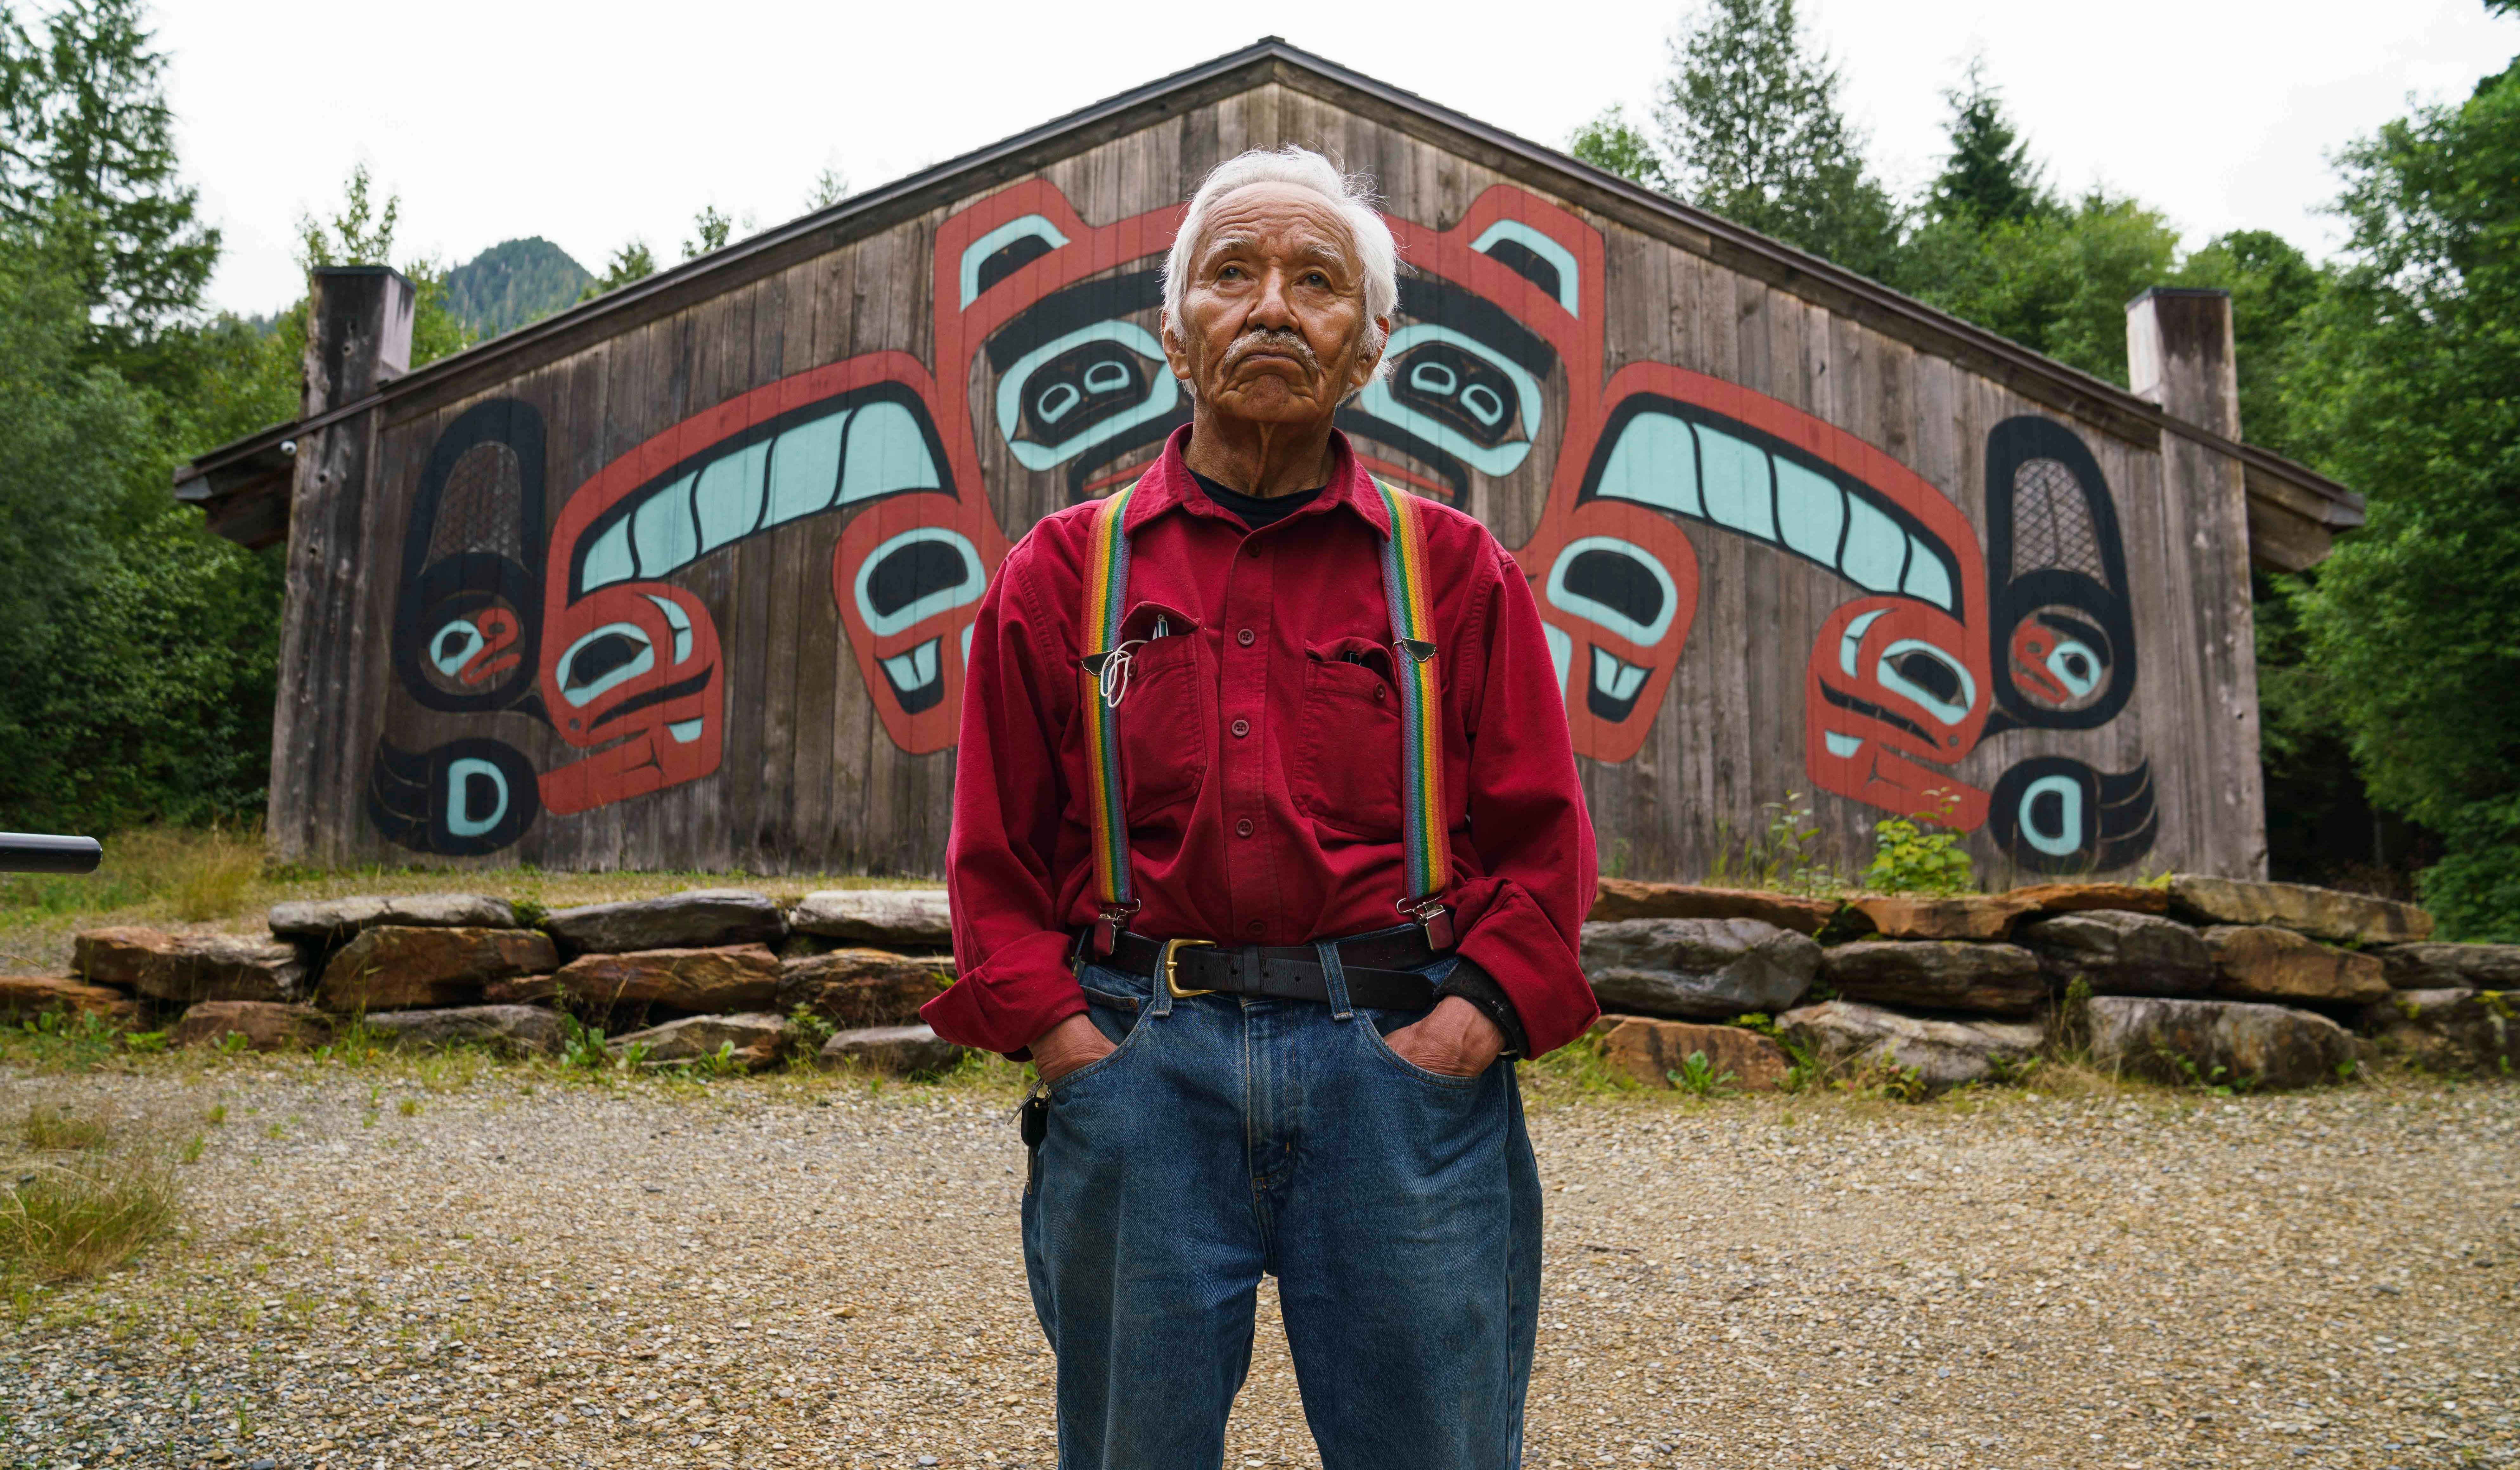 Nathan Jackson, a Chilkoot Sockeye clan leader, in front of a Beaver Clan house screen that adorns a longhouse at Saxman Totem Park. The house screen was carved on vertical cedar planks before it was raised and assembled on the house front. Jackson, who led the project, found his way back to his heritage circuitously after a boyhood spent at a boarding school that prohibited native languages and practices.